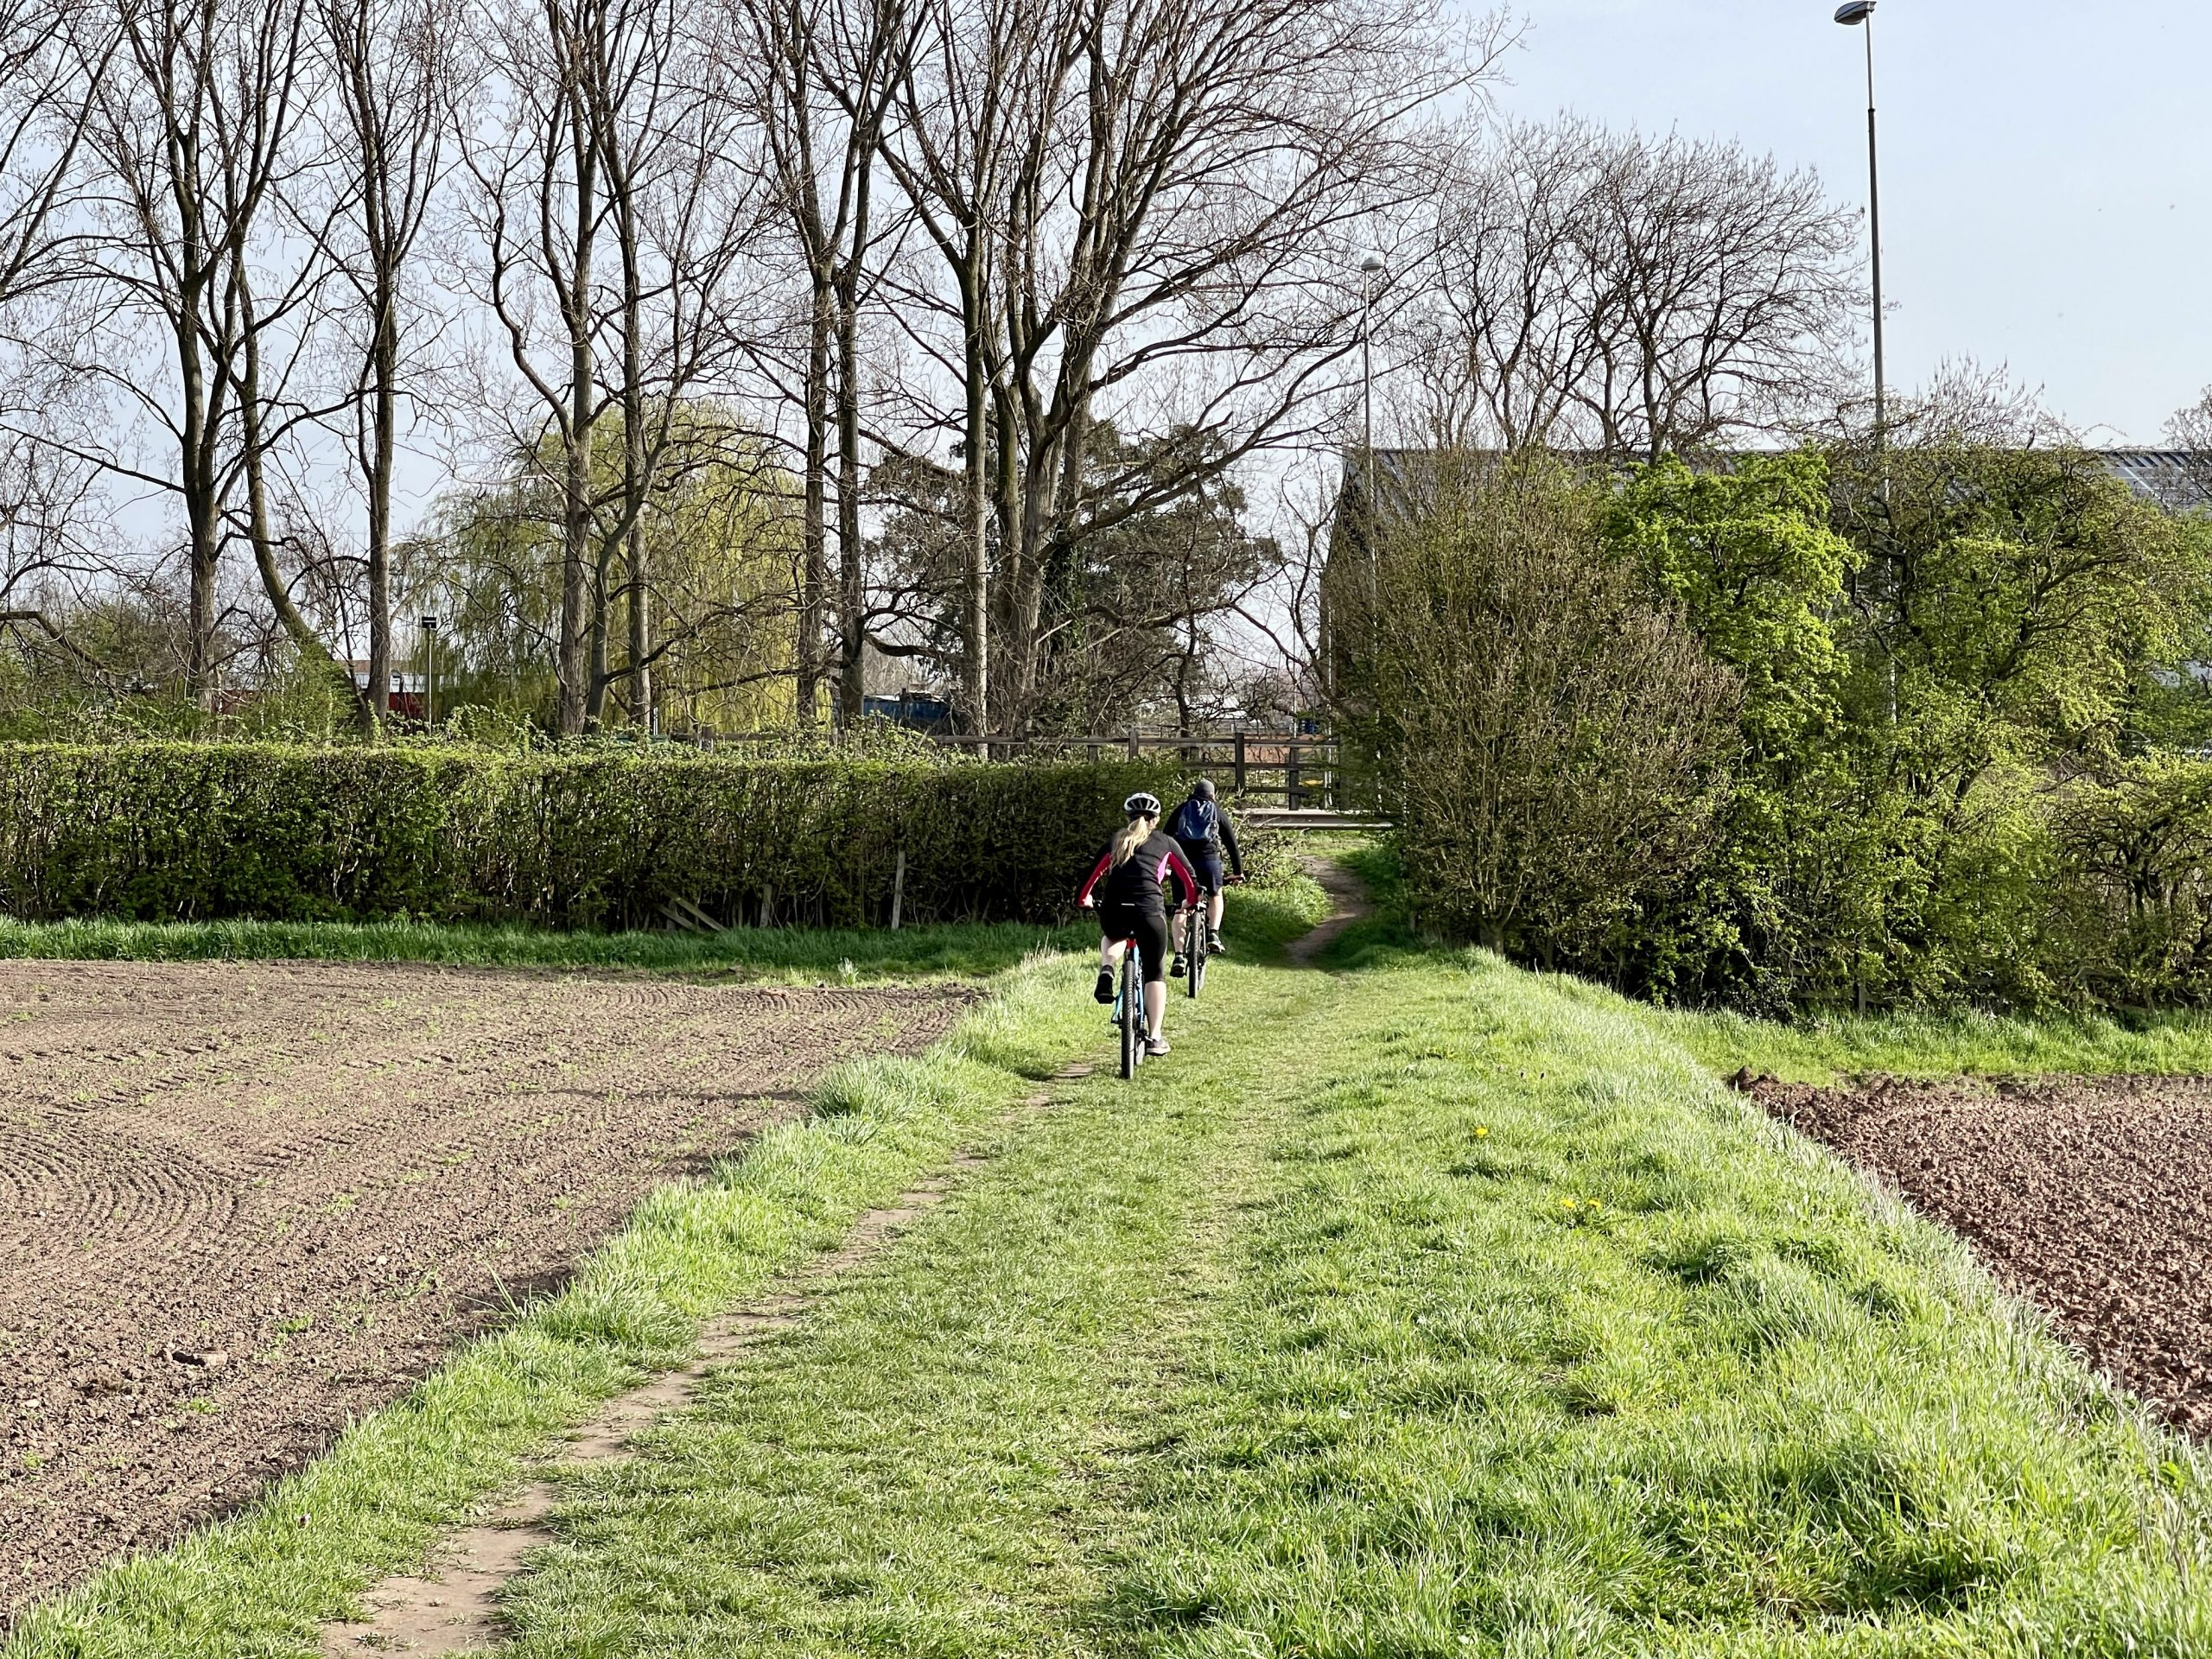 Fields on the south side of the A52 enjoyed by walkers and cyclists © westbridgfordwire.com